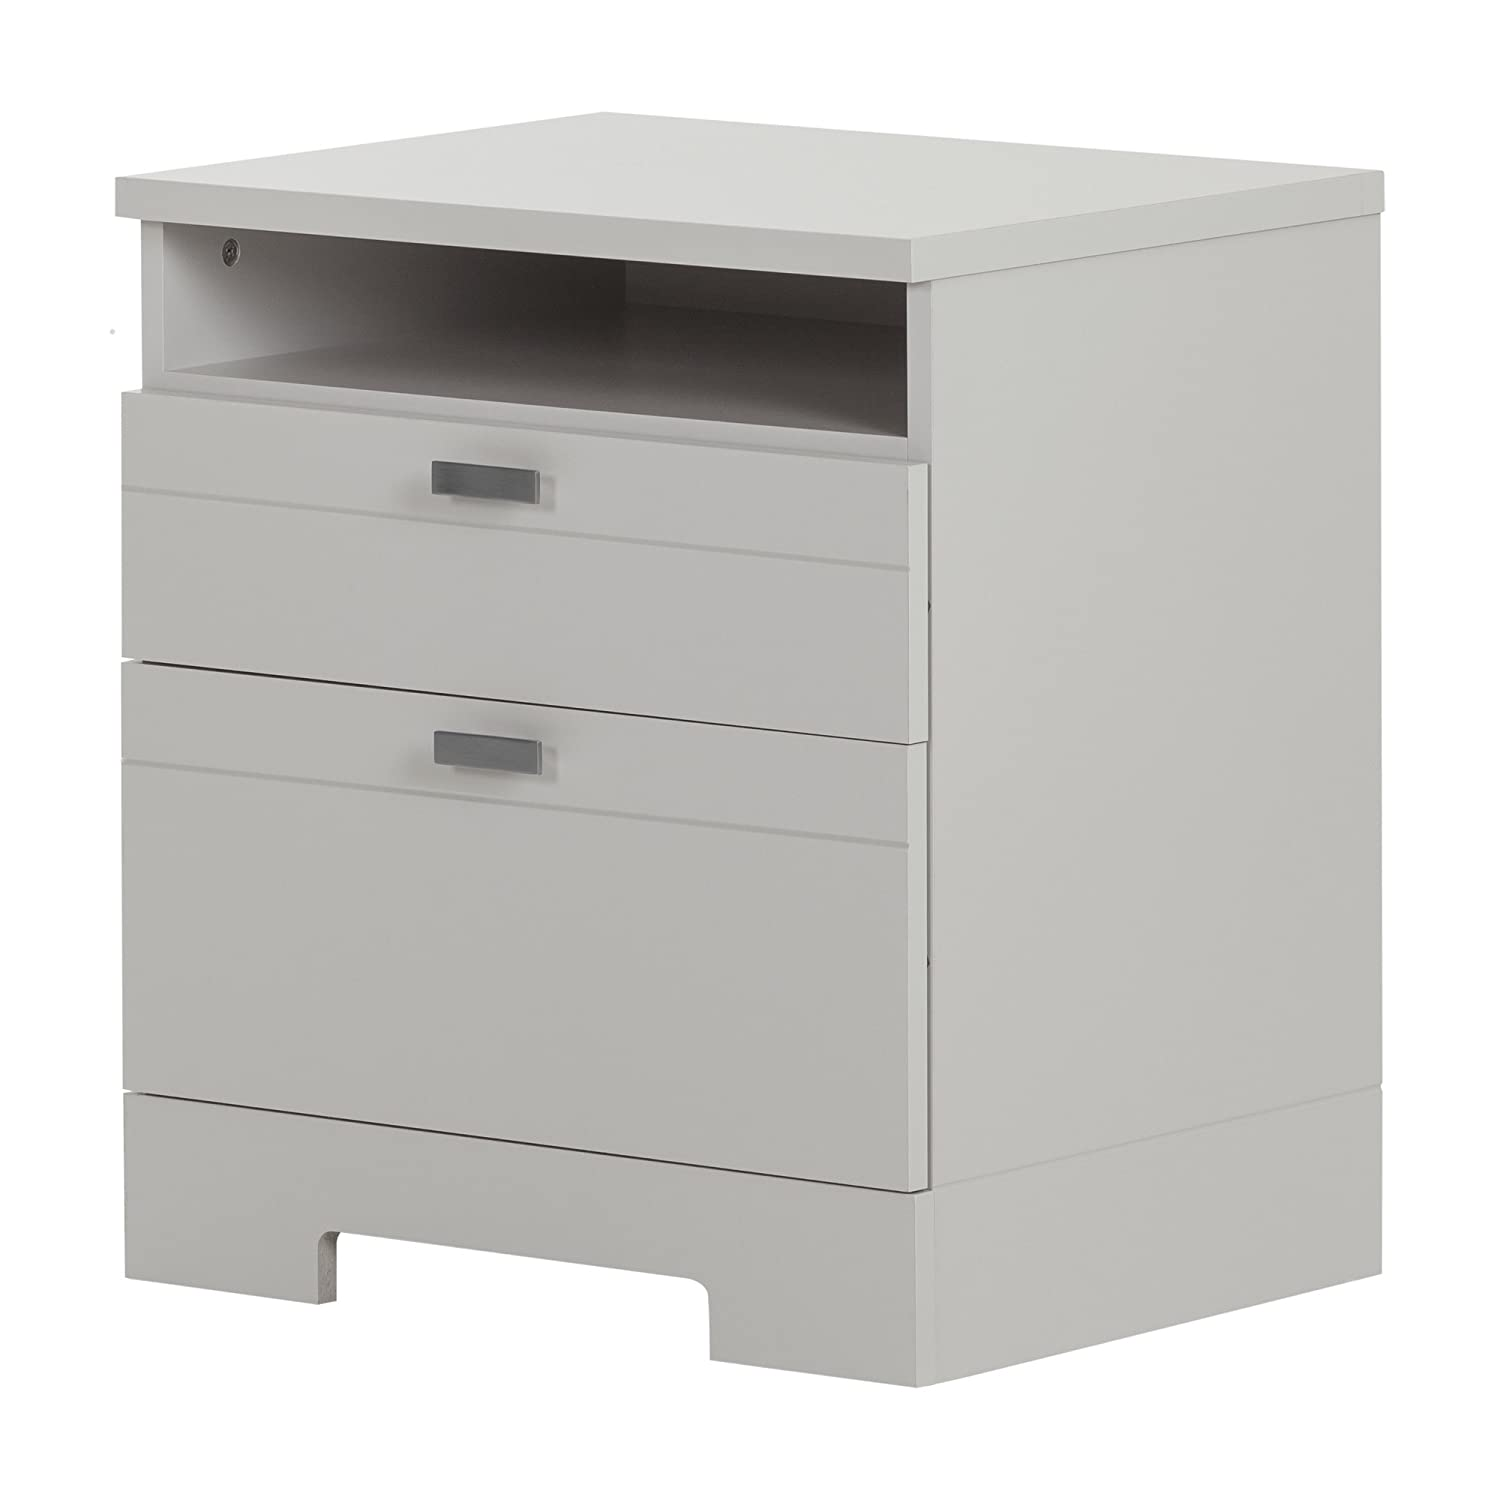 South Shore Reevo 2-Drawer Nightstand, Soft Gray with Matte Nickel Handles